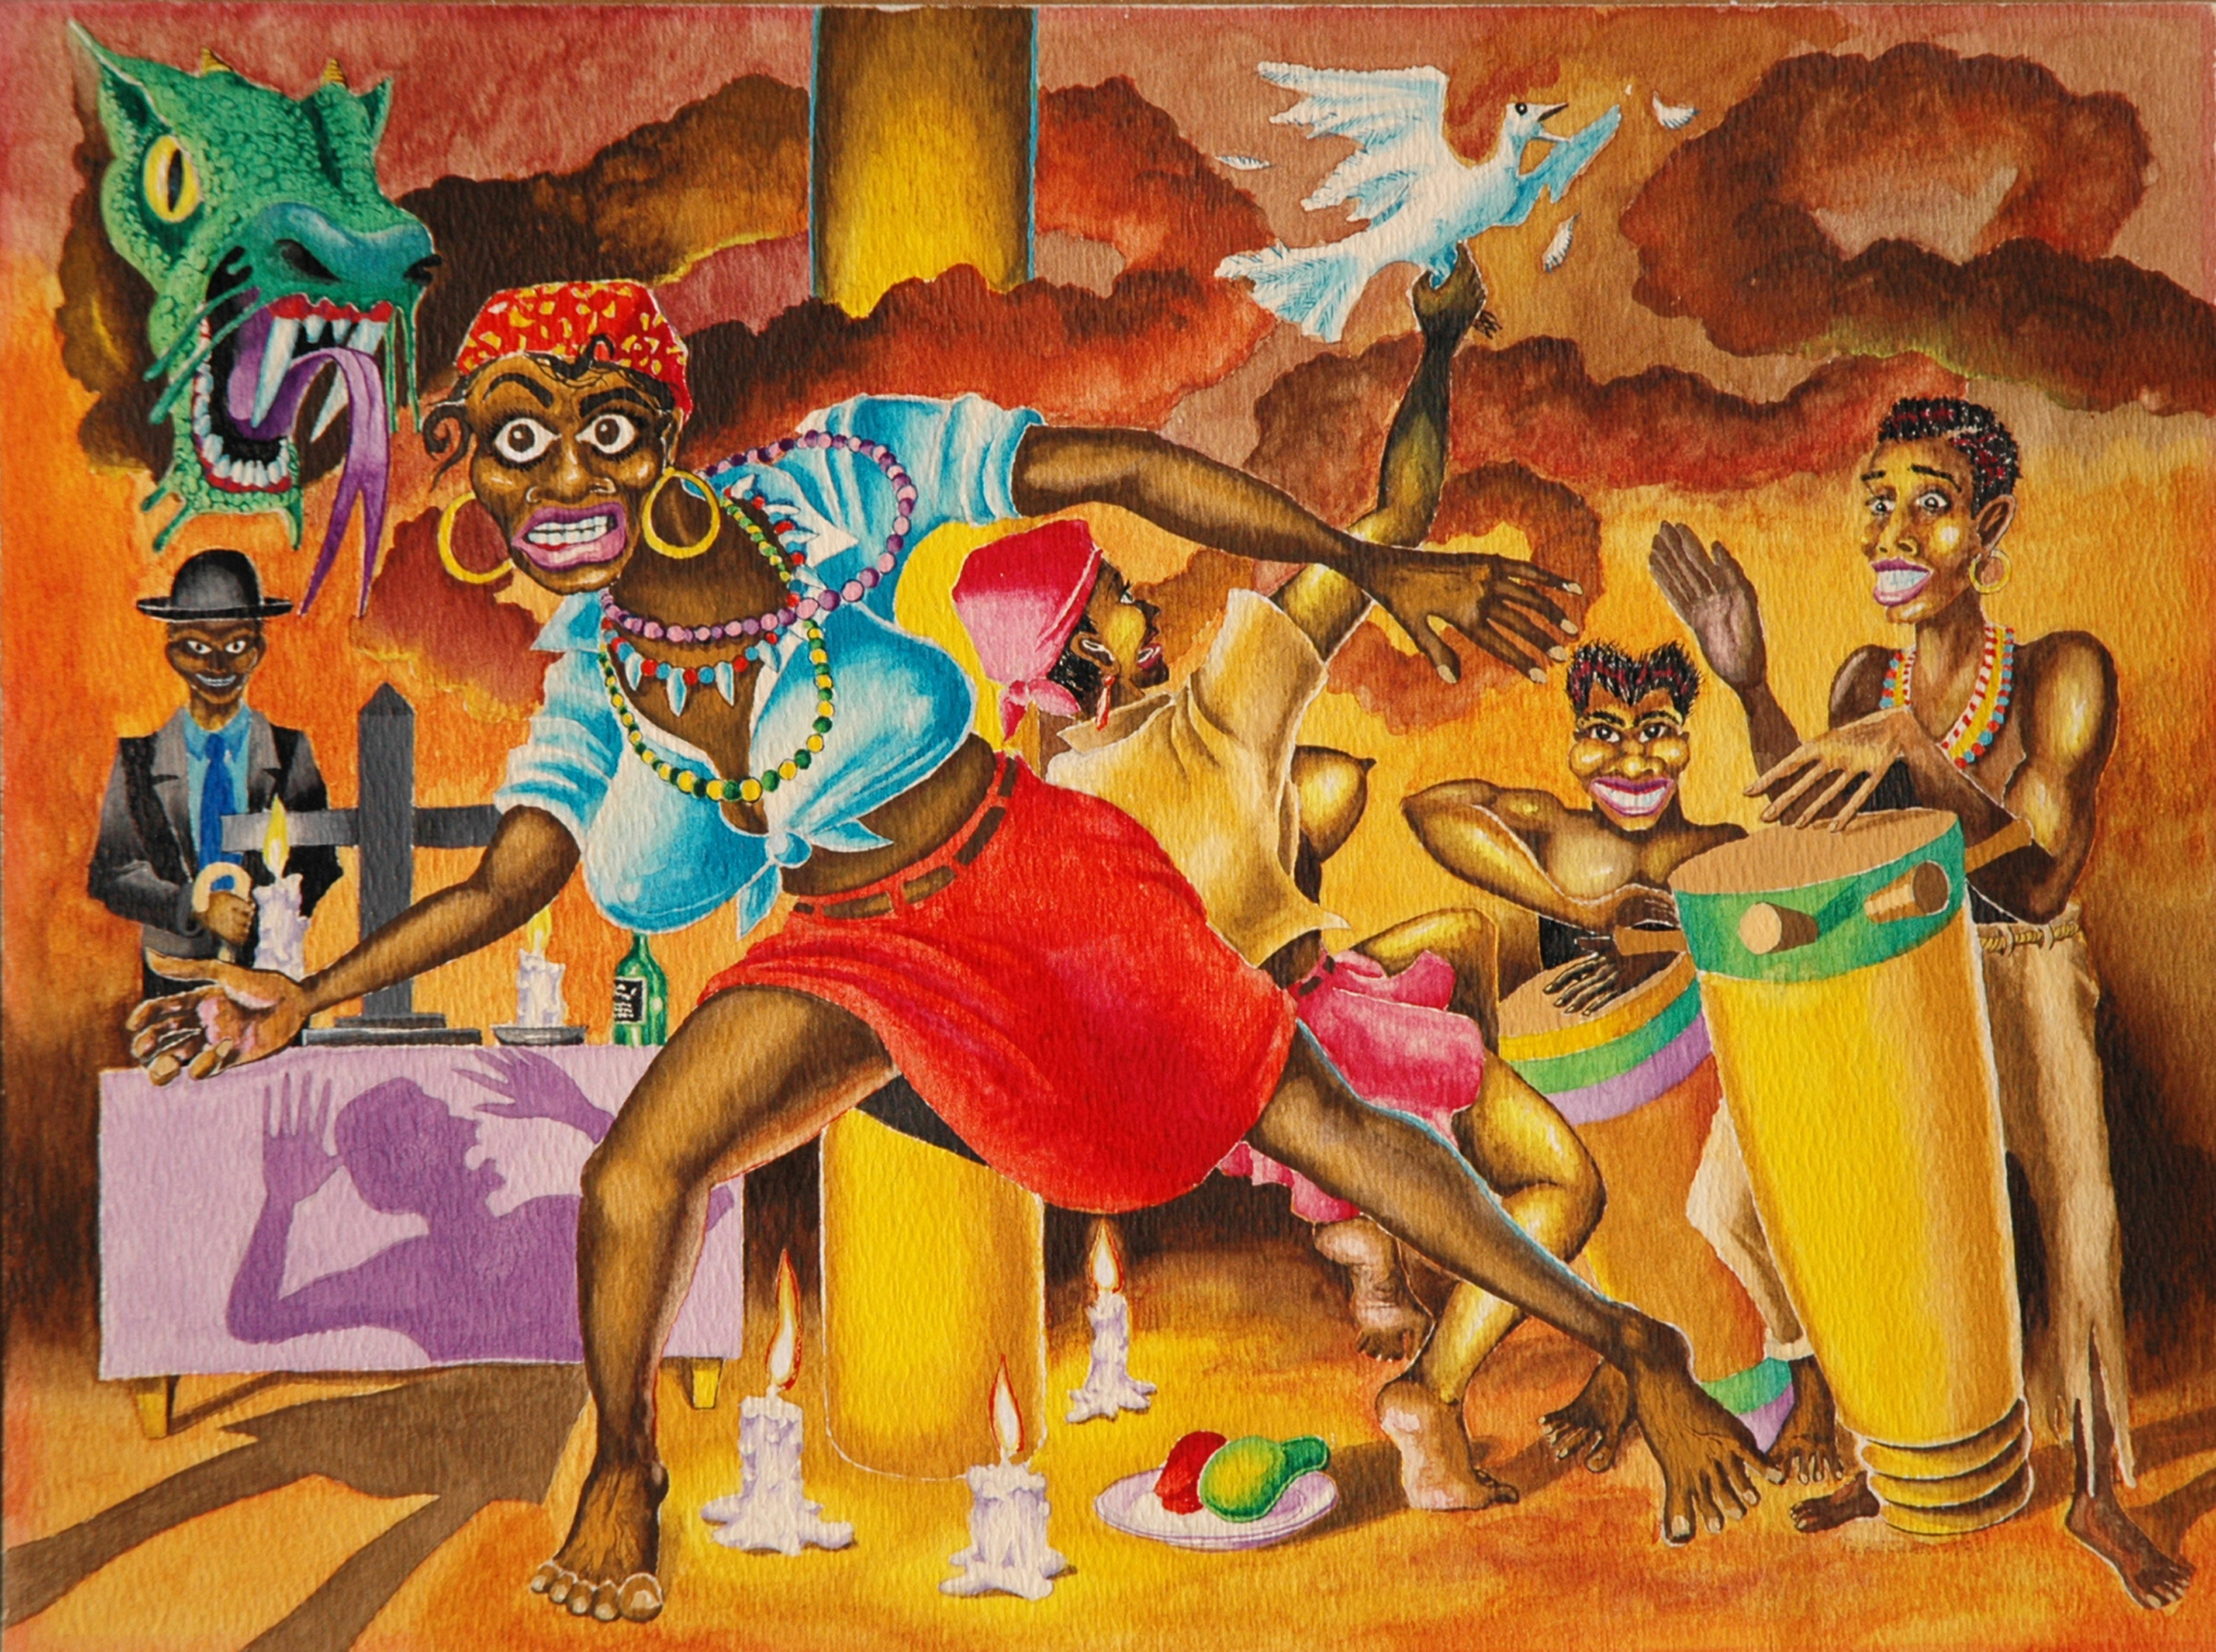 George Kuchar,  Trance of the Tropics,  1982, watercolor on paper, 8 3/4 x 12 inches, © Kuchar Brothers Trust.